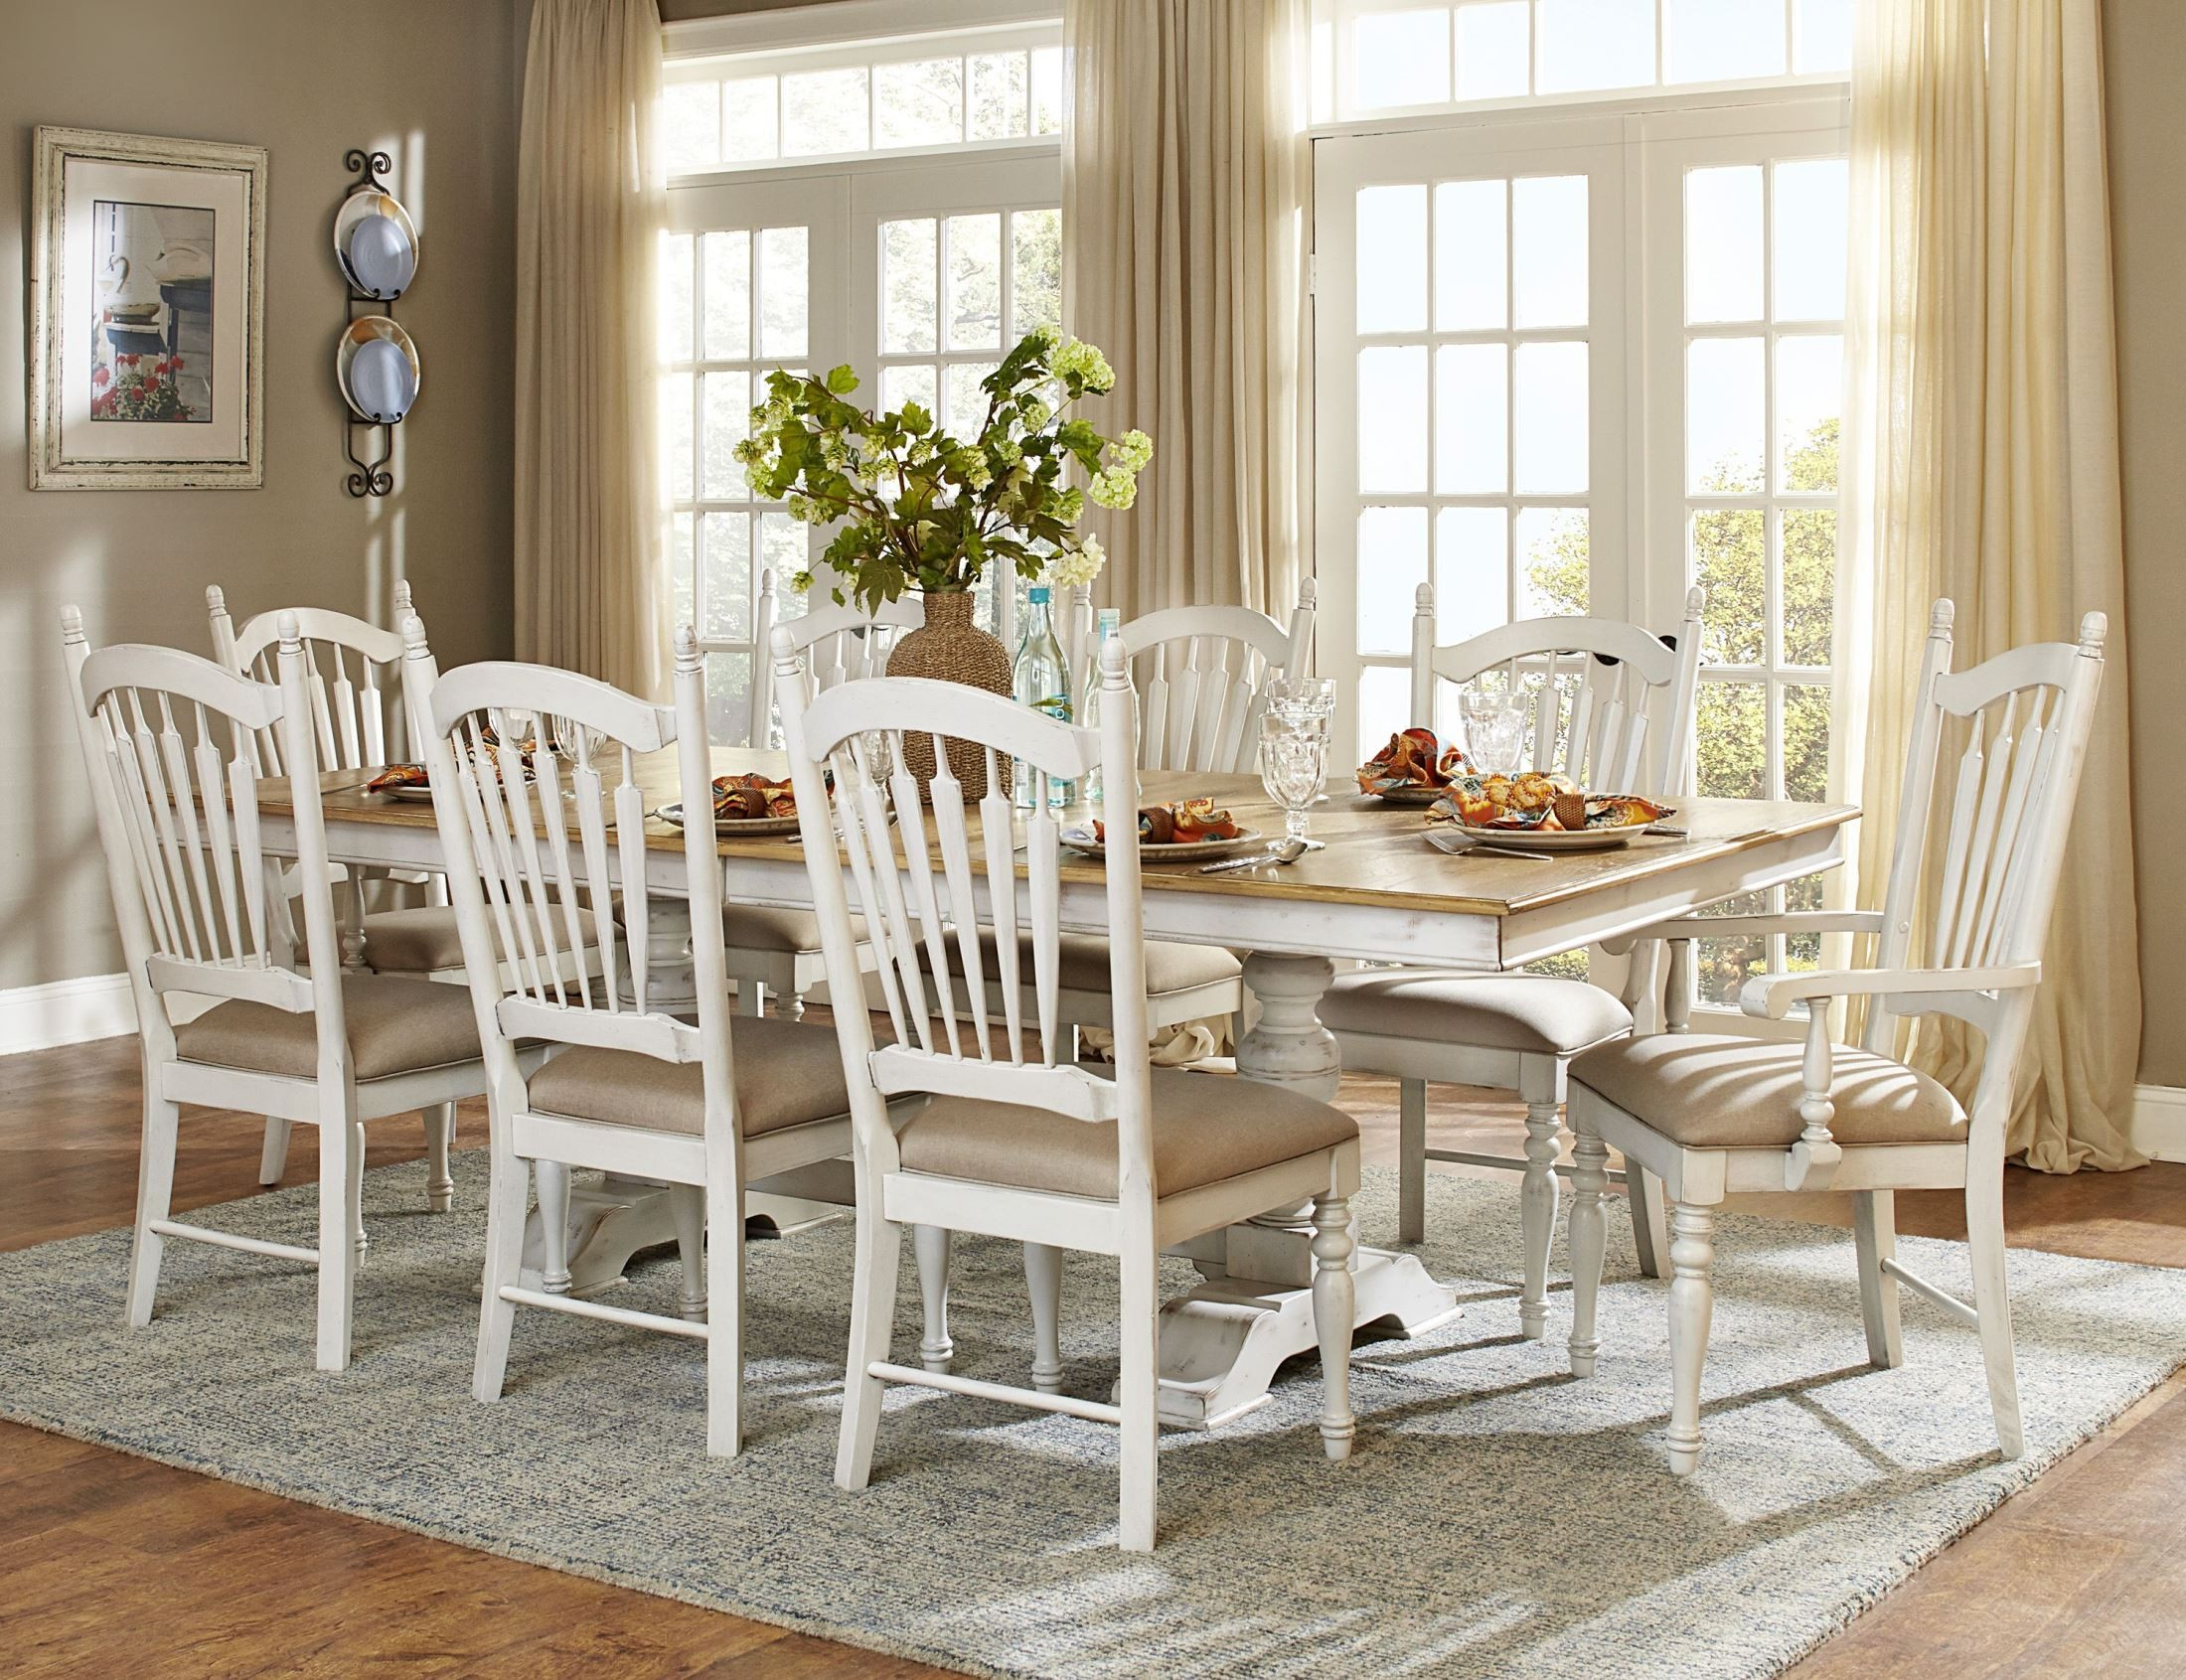 Distressed dining table - 776777